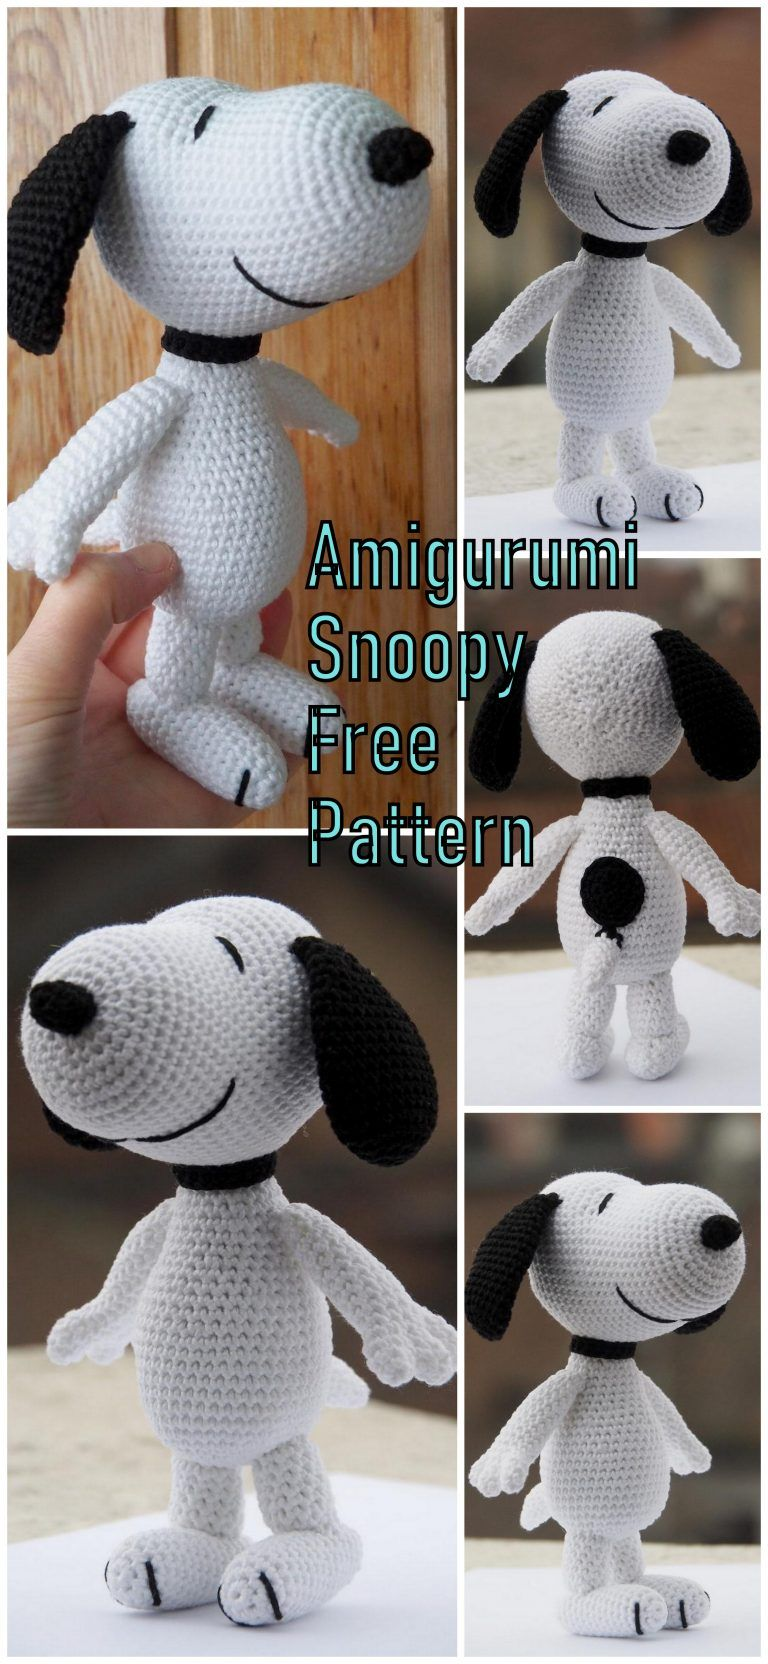 25 Free Amigurumi Dog Crochet Patterns to Download Now! | 1664x768